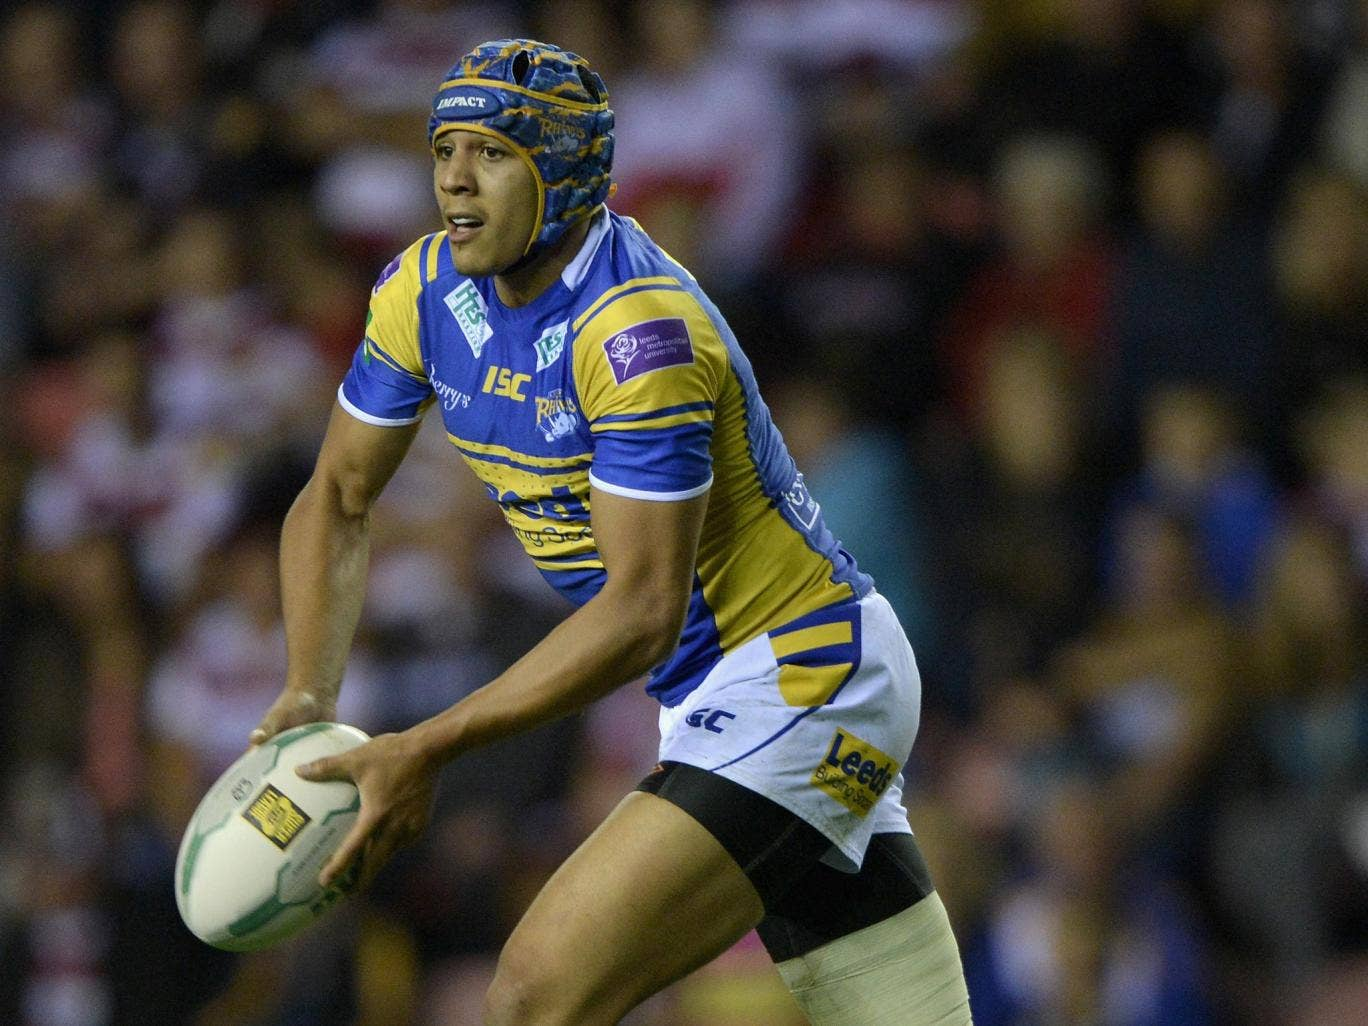 Leeds star Ben Jones-Bishop scored two tries in the win against Castleford to keep his side top